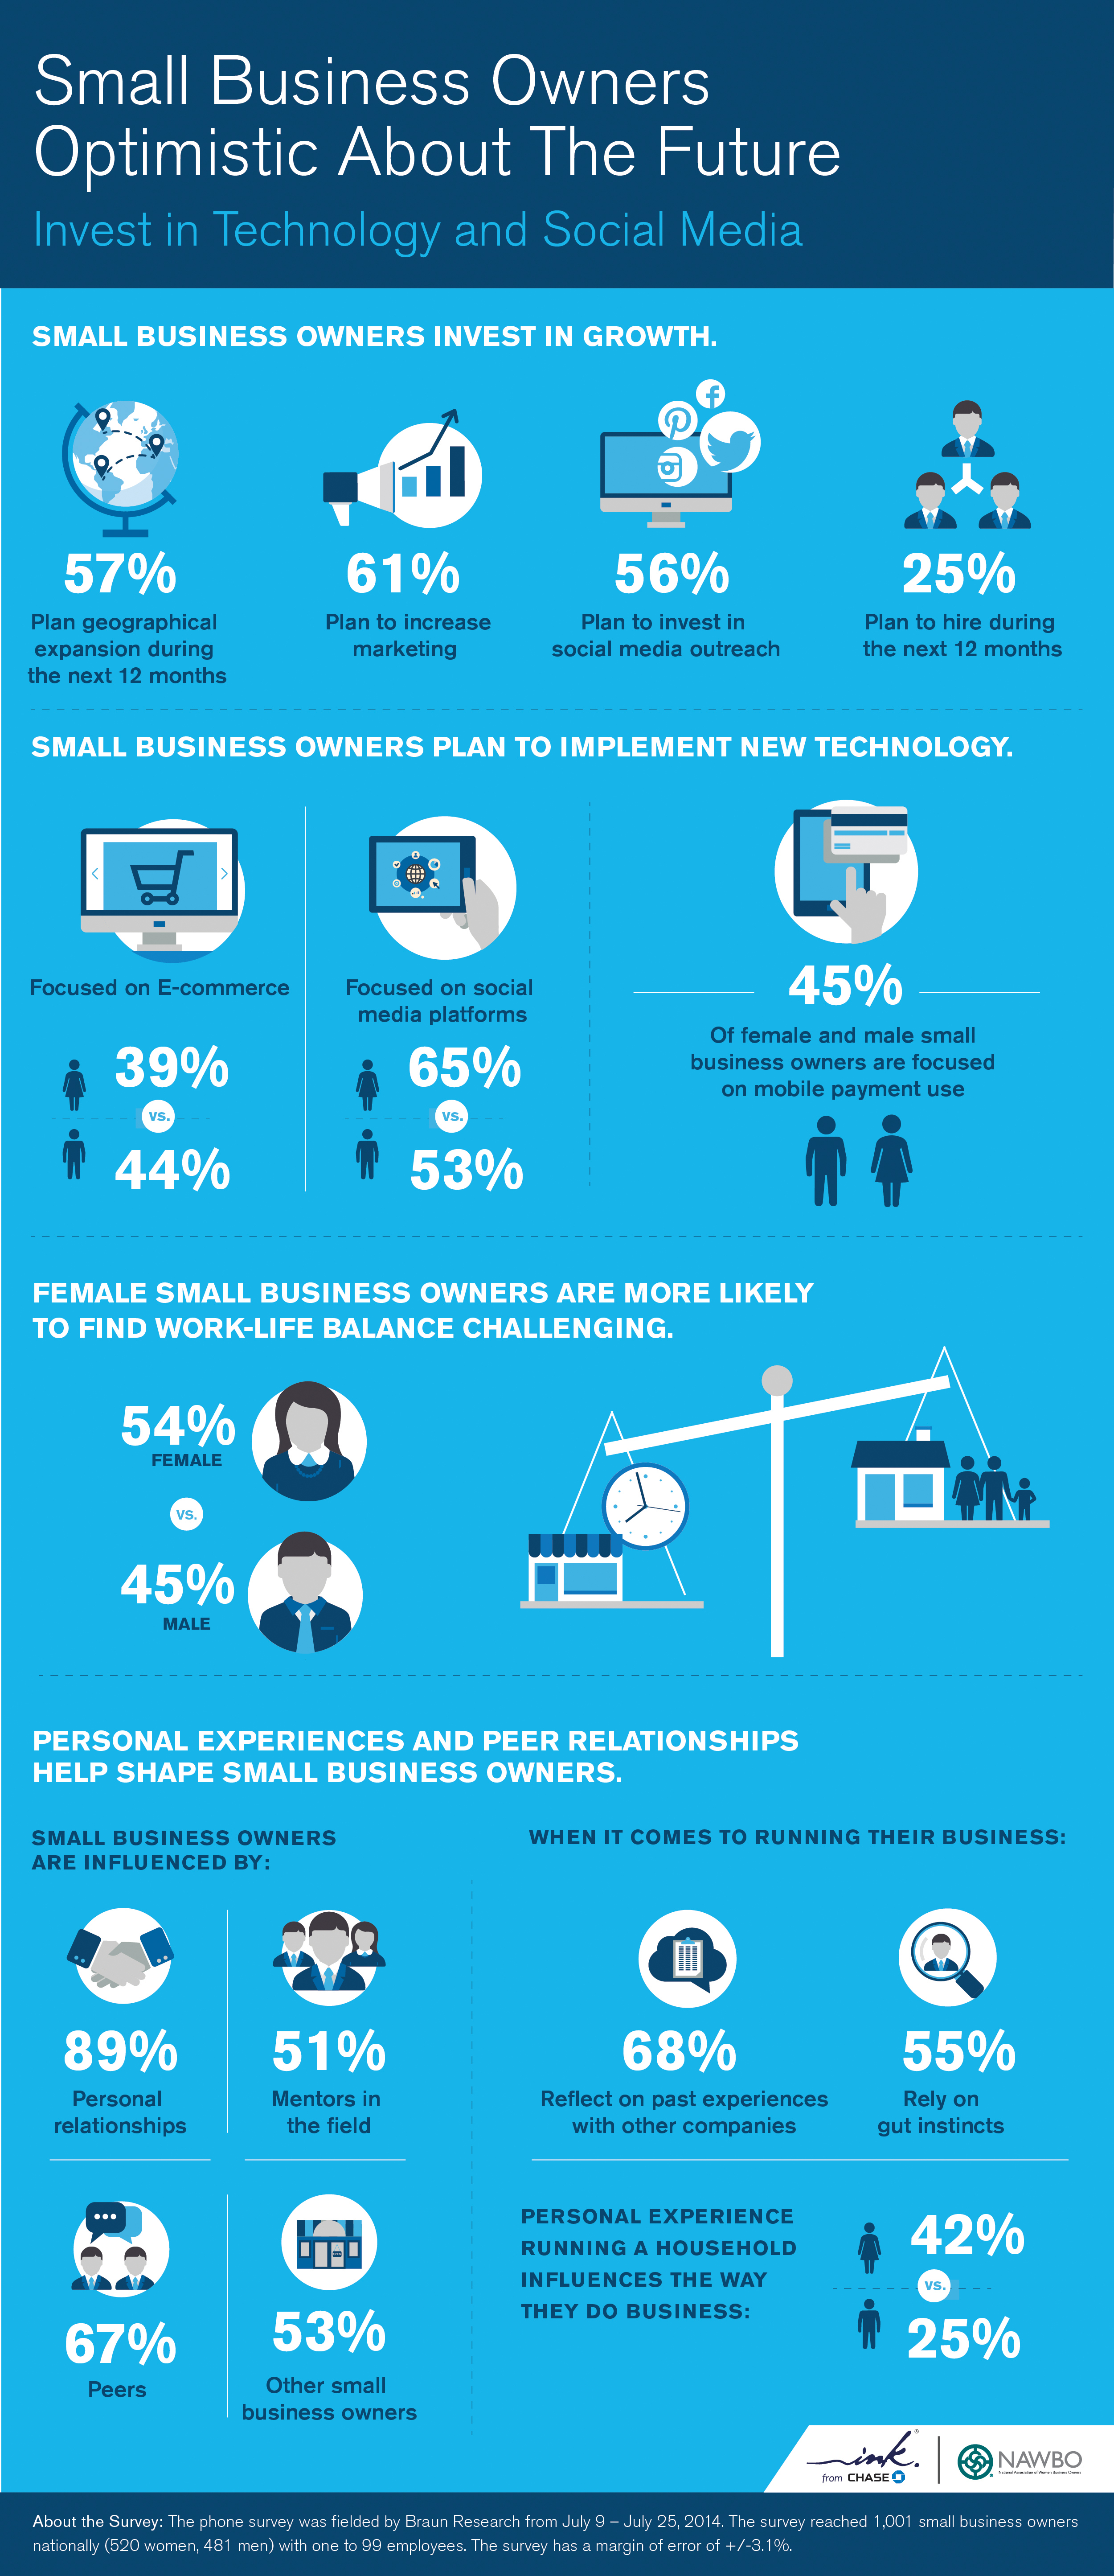 Ink from Chase and NAWBO Survey Reveals Female Small Business Owners ...